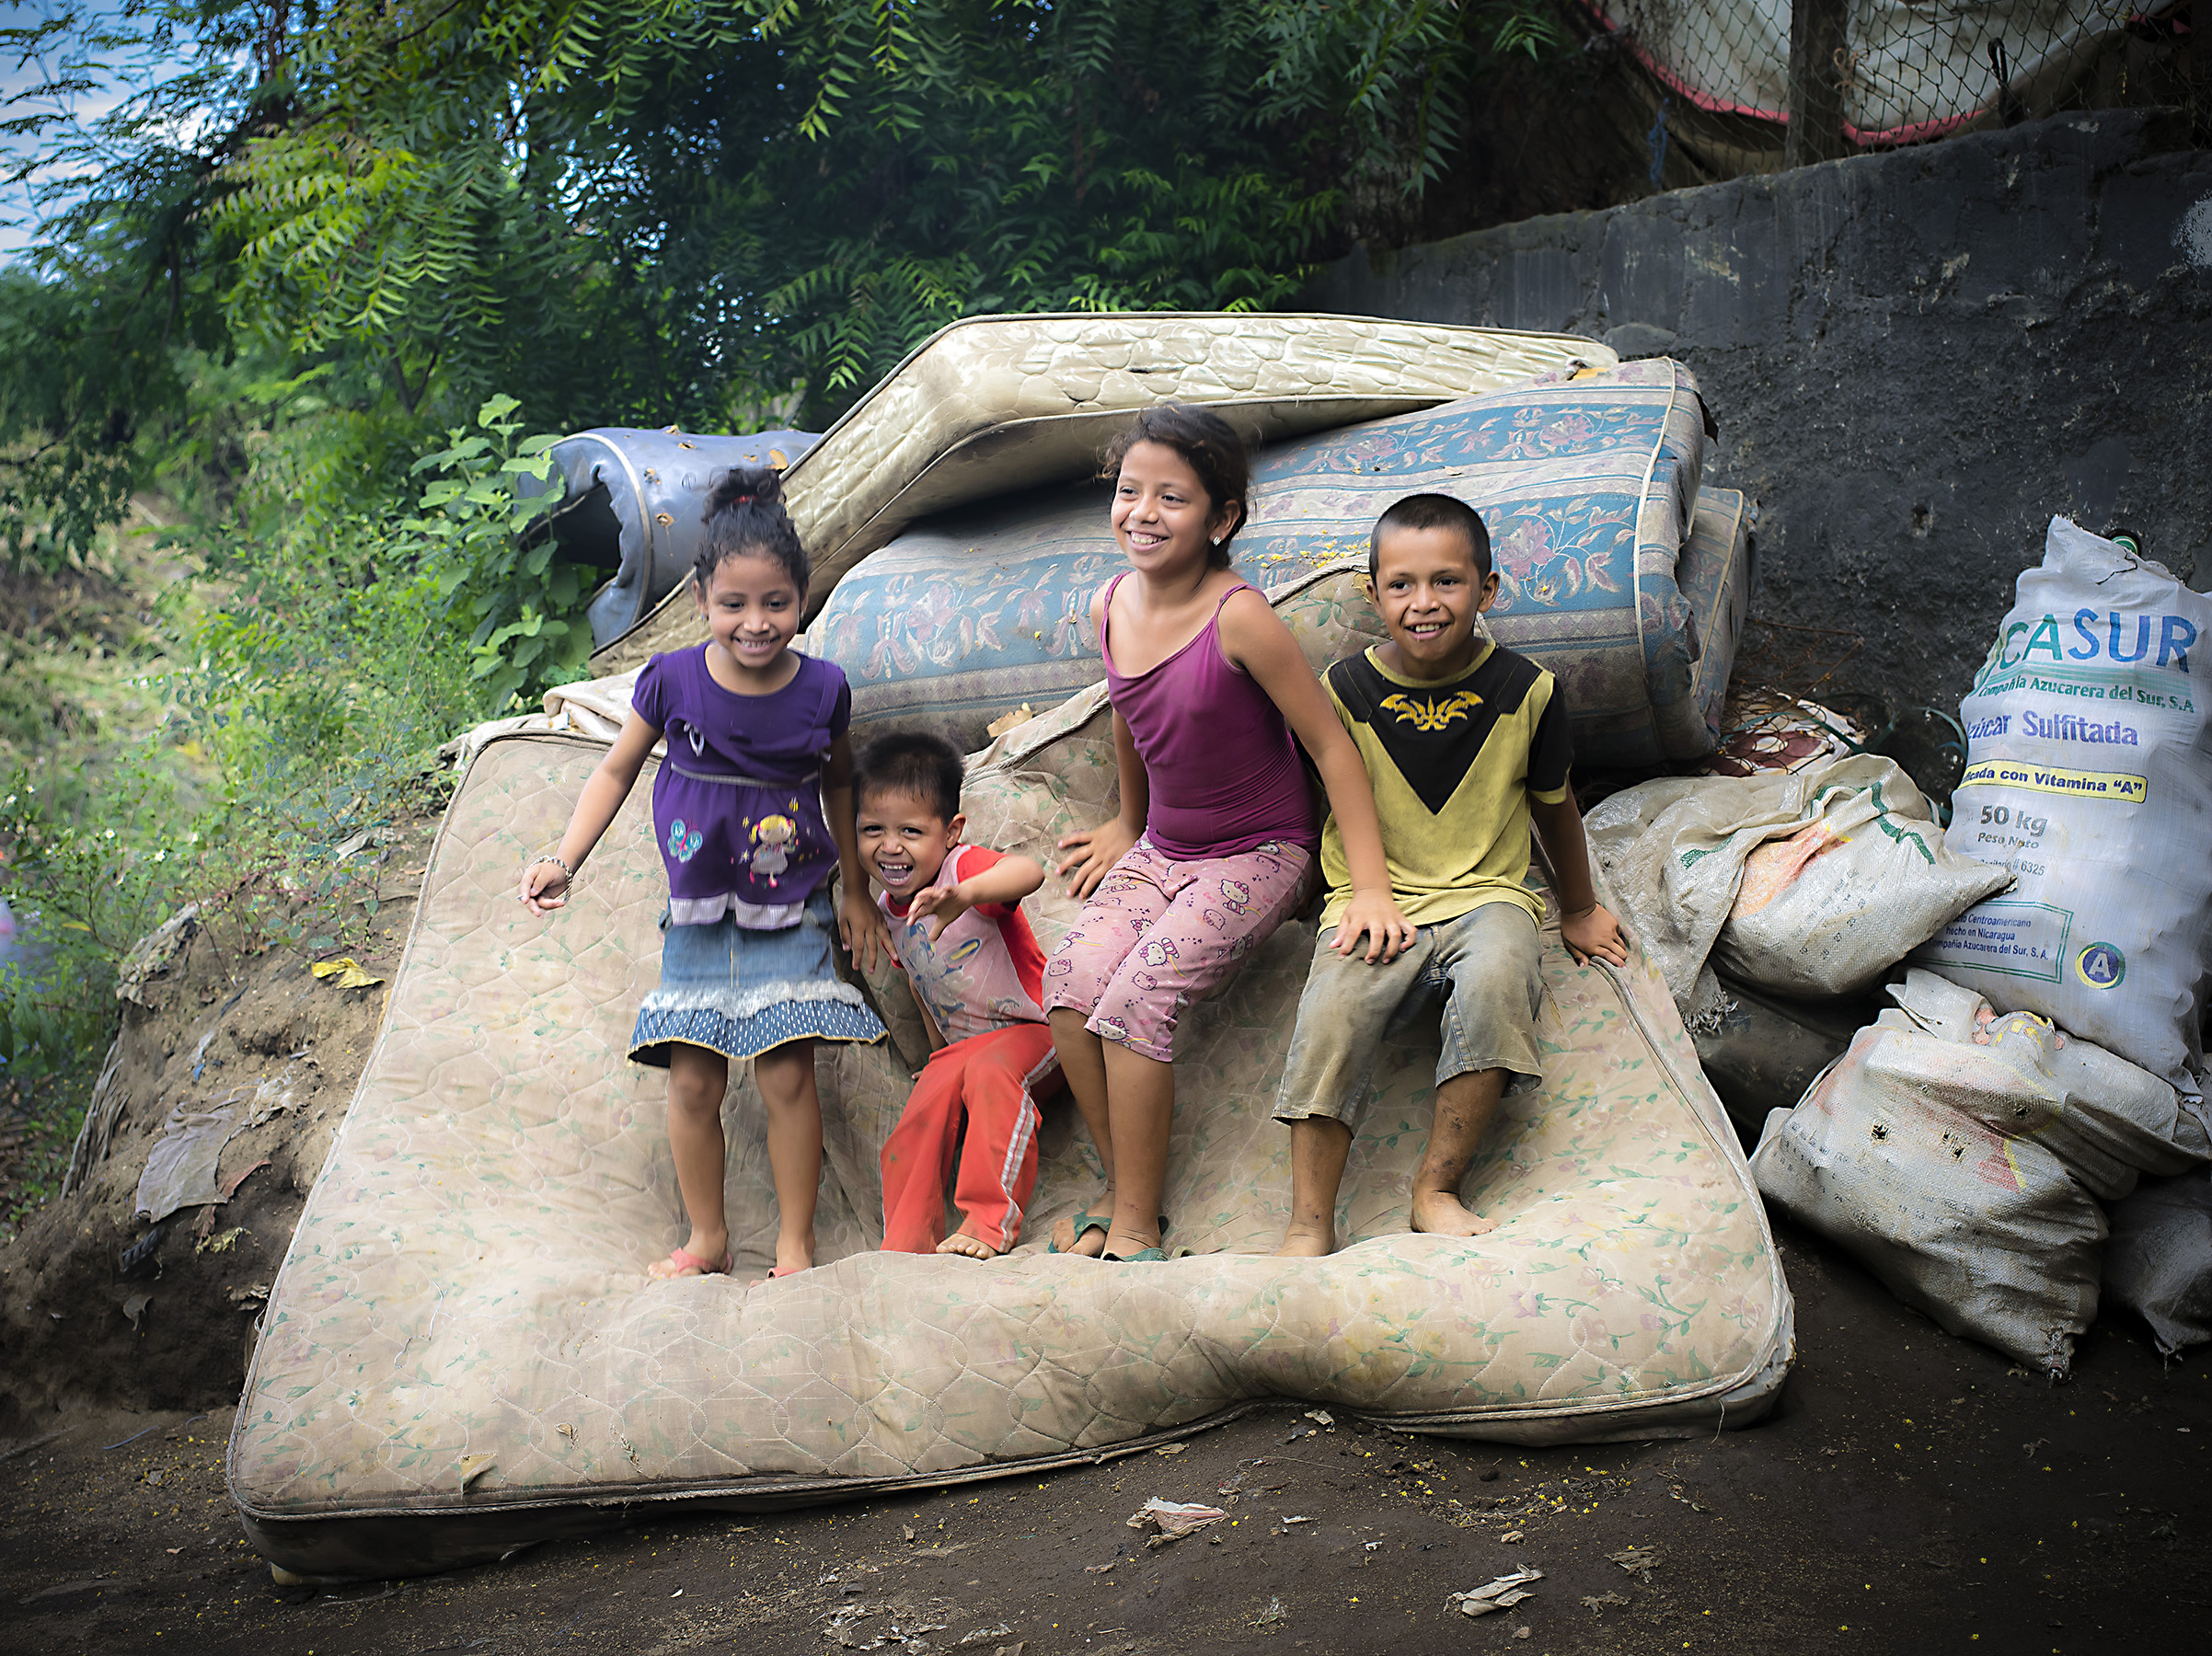 Fernanda, Norlan, Siara, and Pedro bouncing on mattresses found in the dump site. Mattresses like these can be reused as a mattress or the coils inside will be used to make a fence.